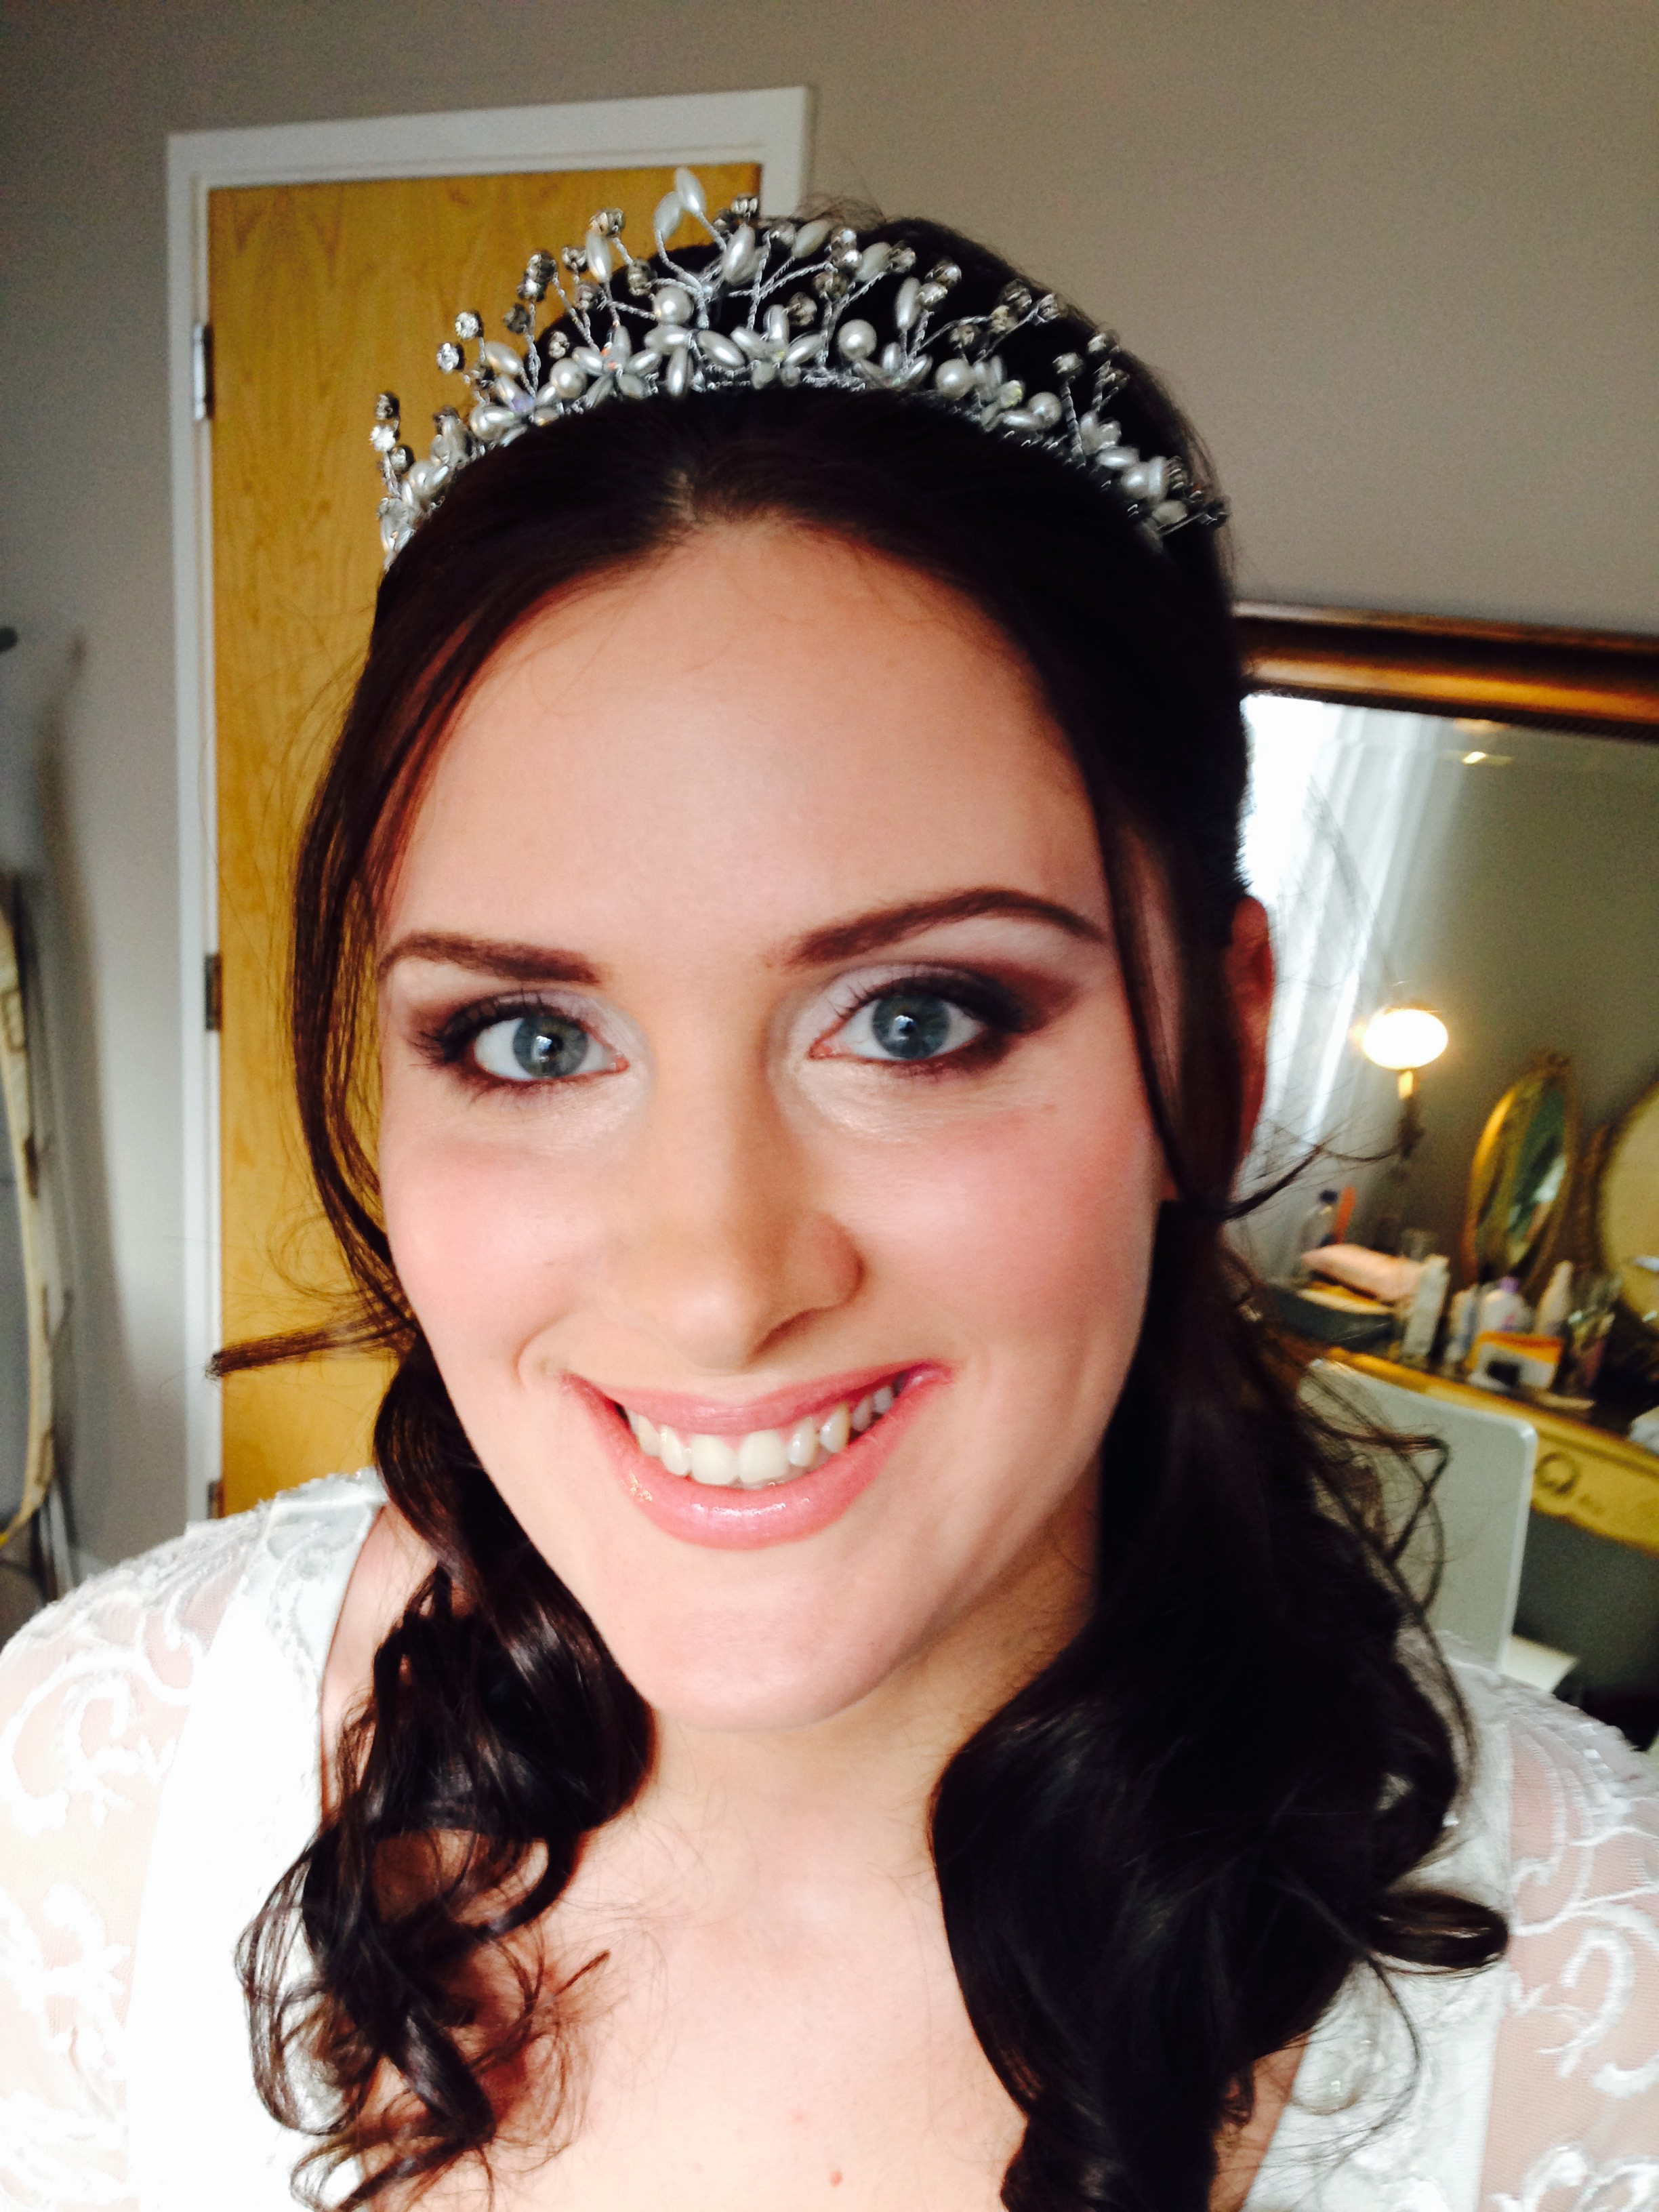 Wedding Hair And Makeup East : Wedding for Victoria, Brighton, East Sussex 14/02/15